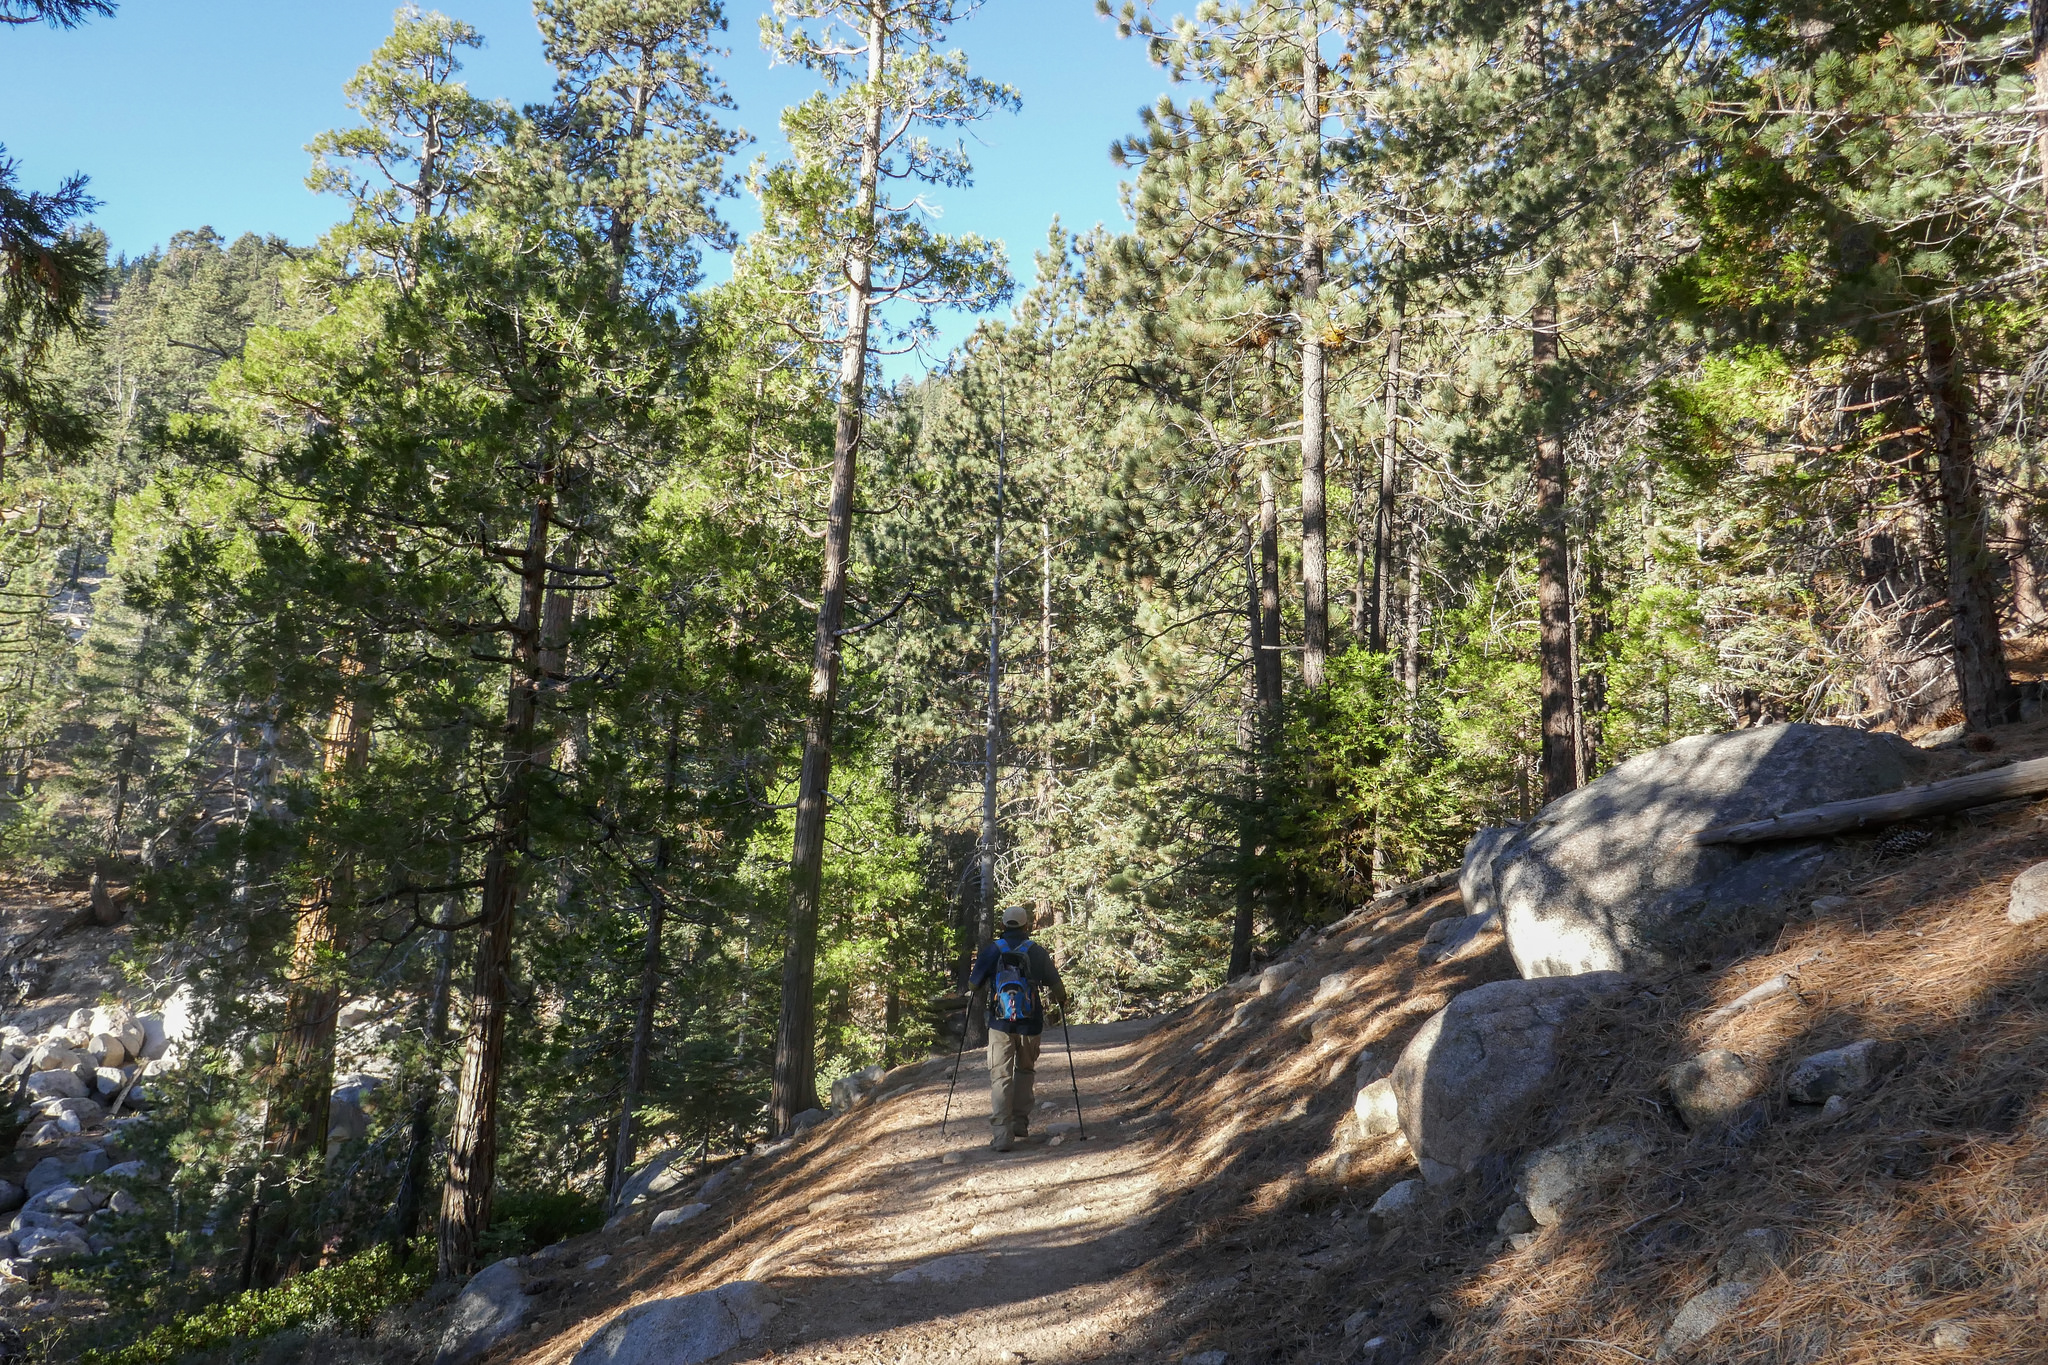 The Waterman Mountain trail is a beautiful stretch of trail. It's shaded and full of fragrant Jeffrey pines.